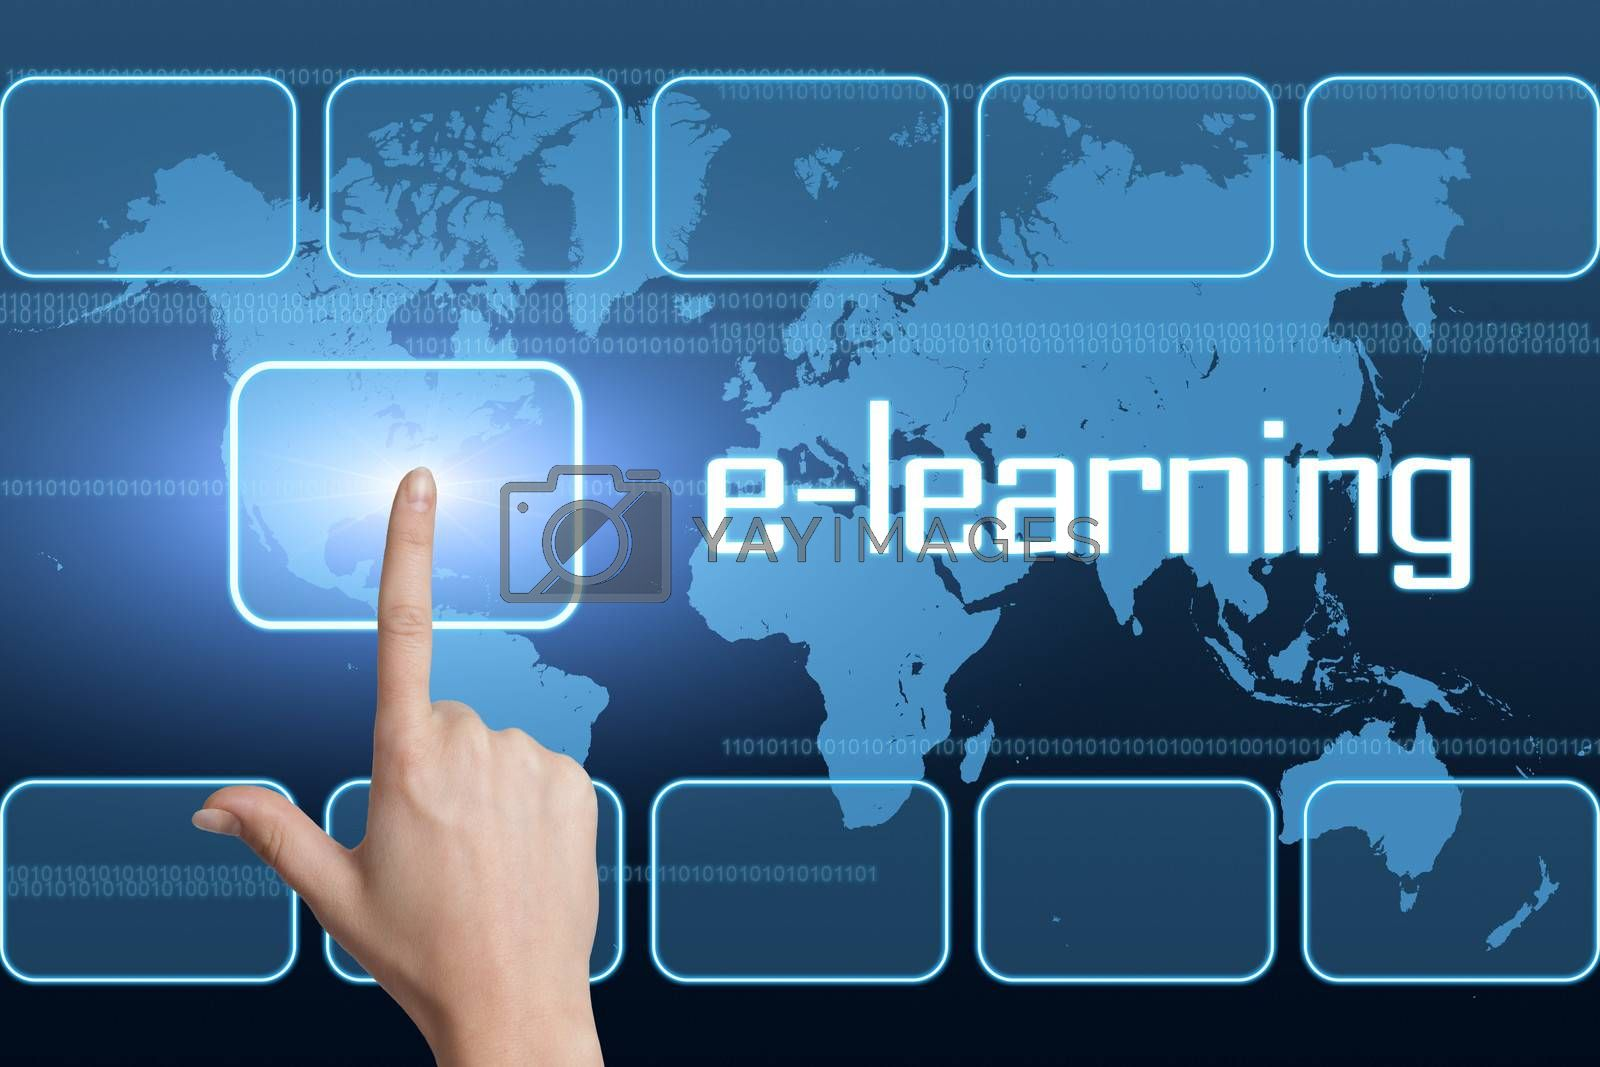 E Learning Royalty Free Stock Image Yayimages Royalty Free Stock Photos And Vectors